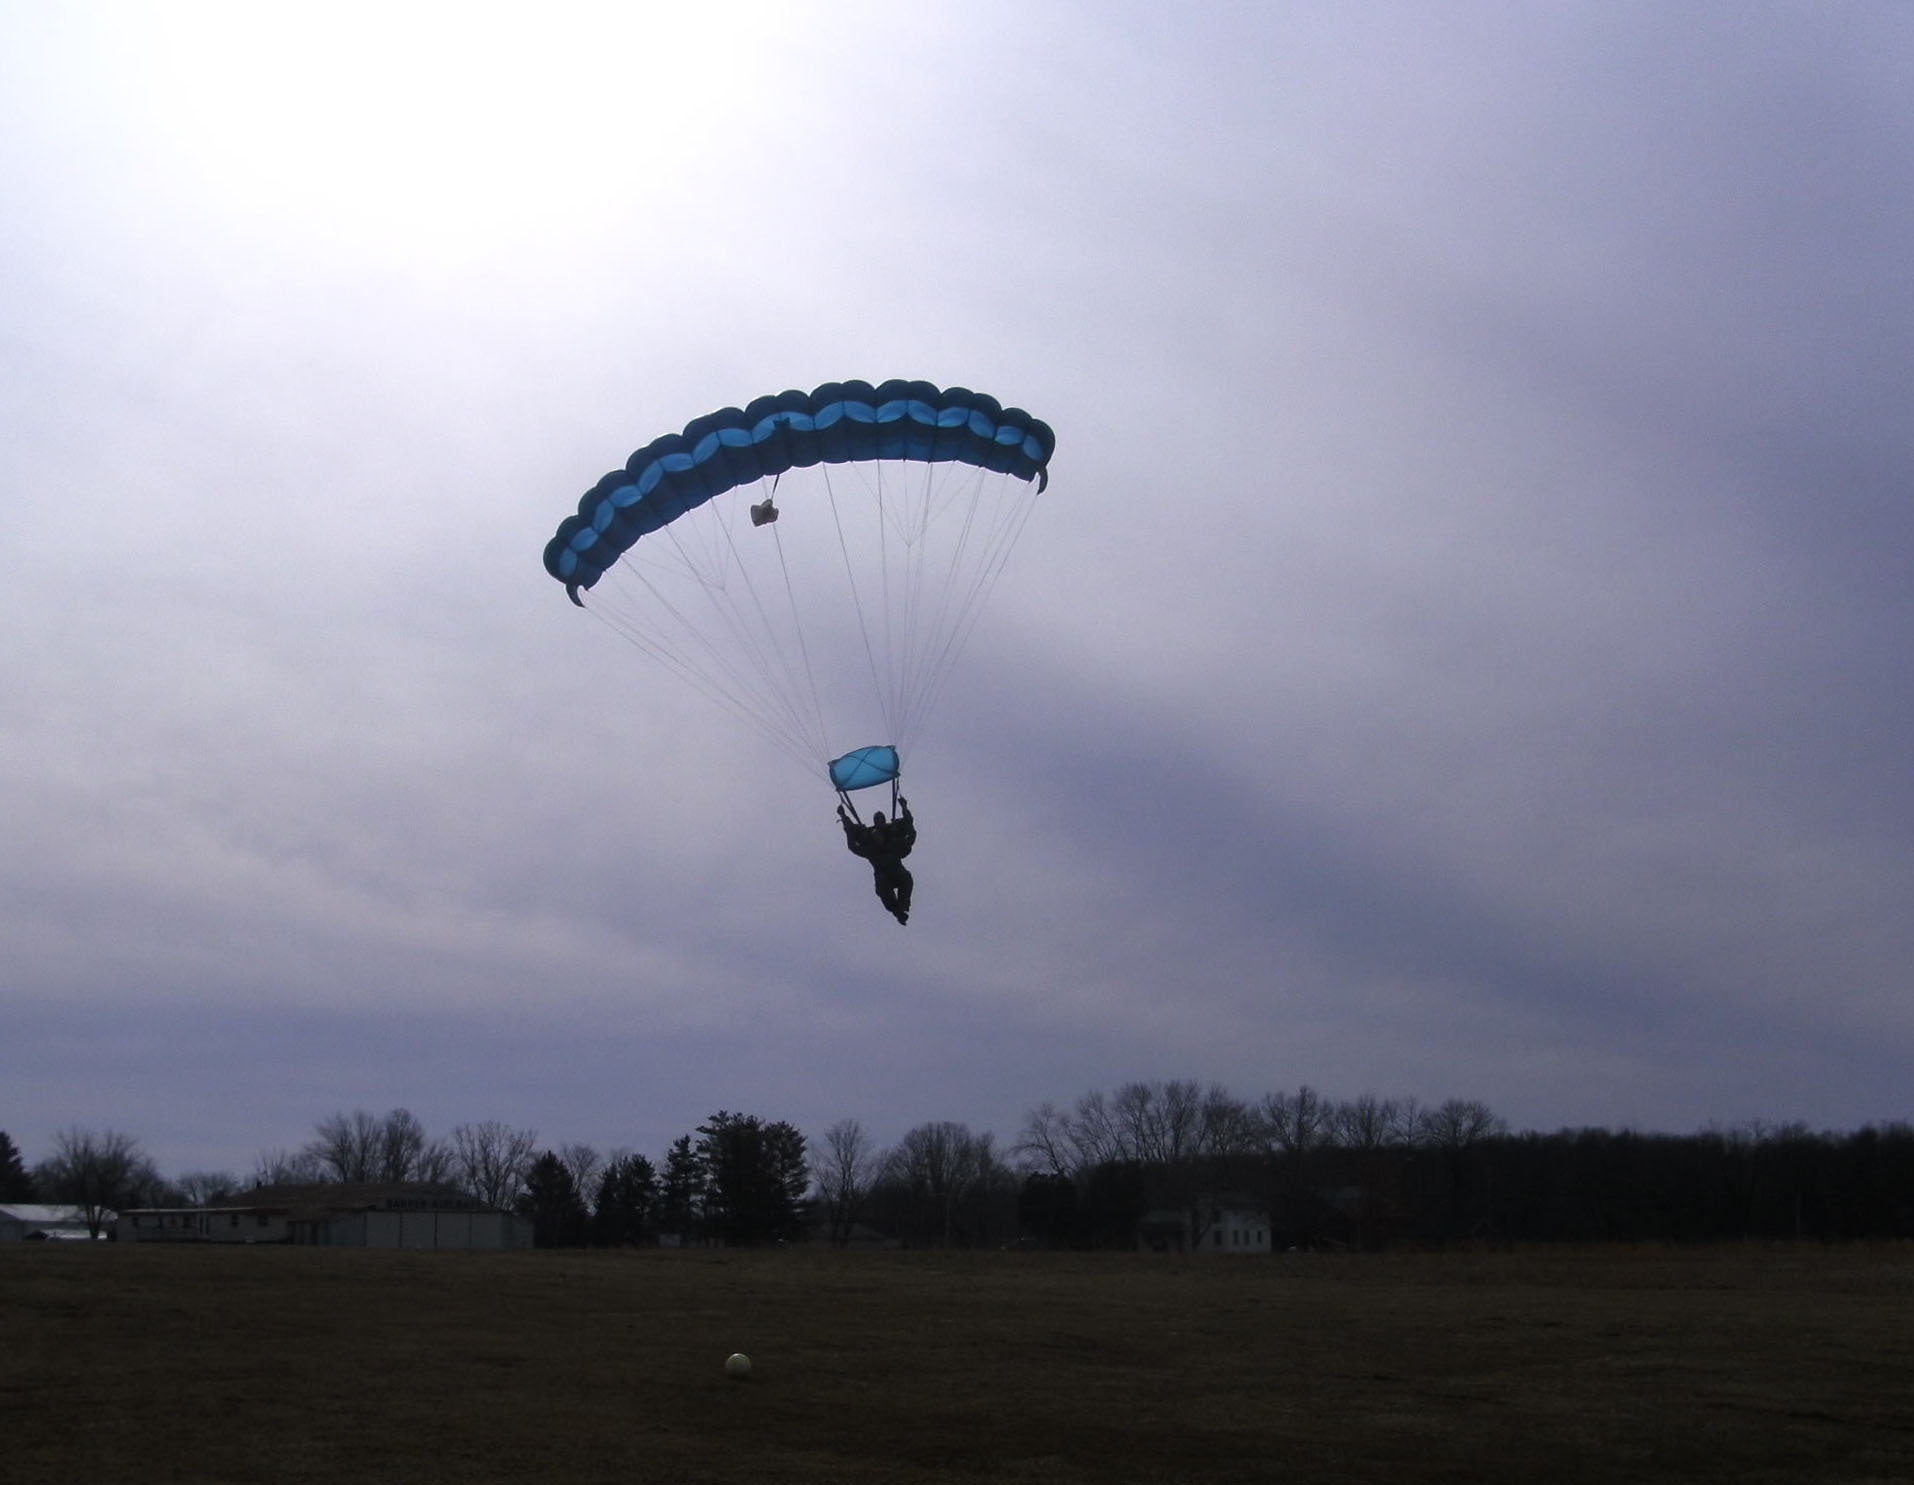 skydiving%2521%2520and%2520others%2520036.jpg